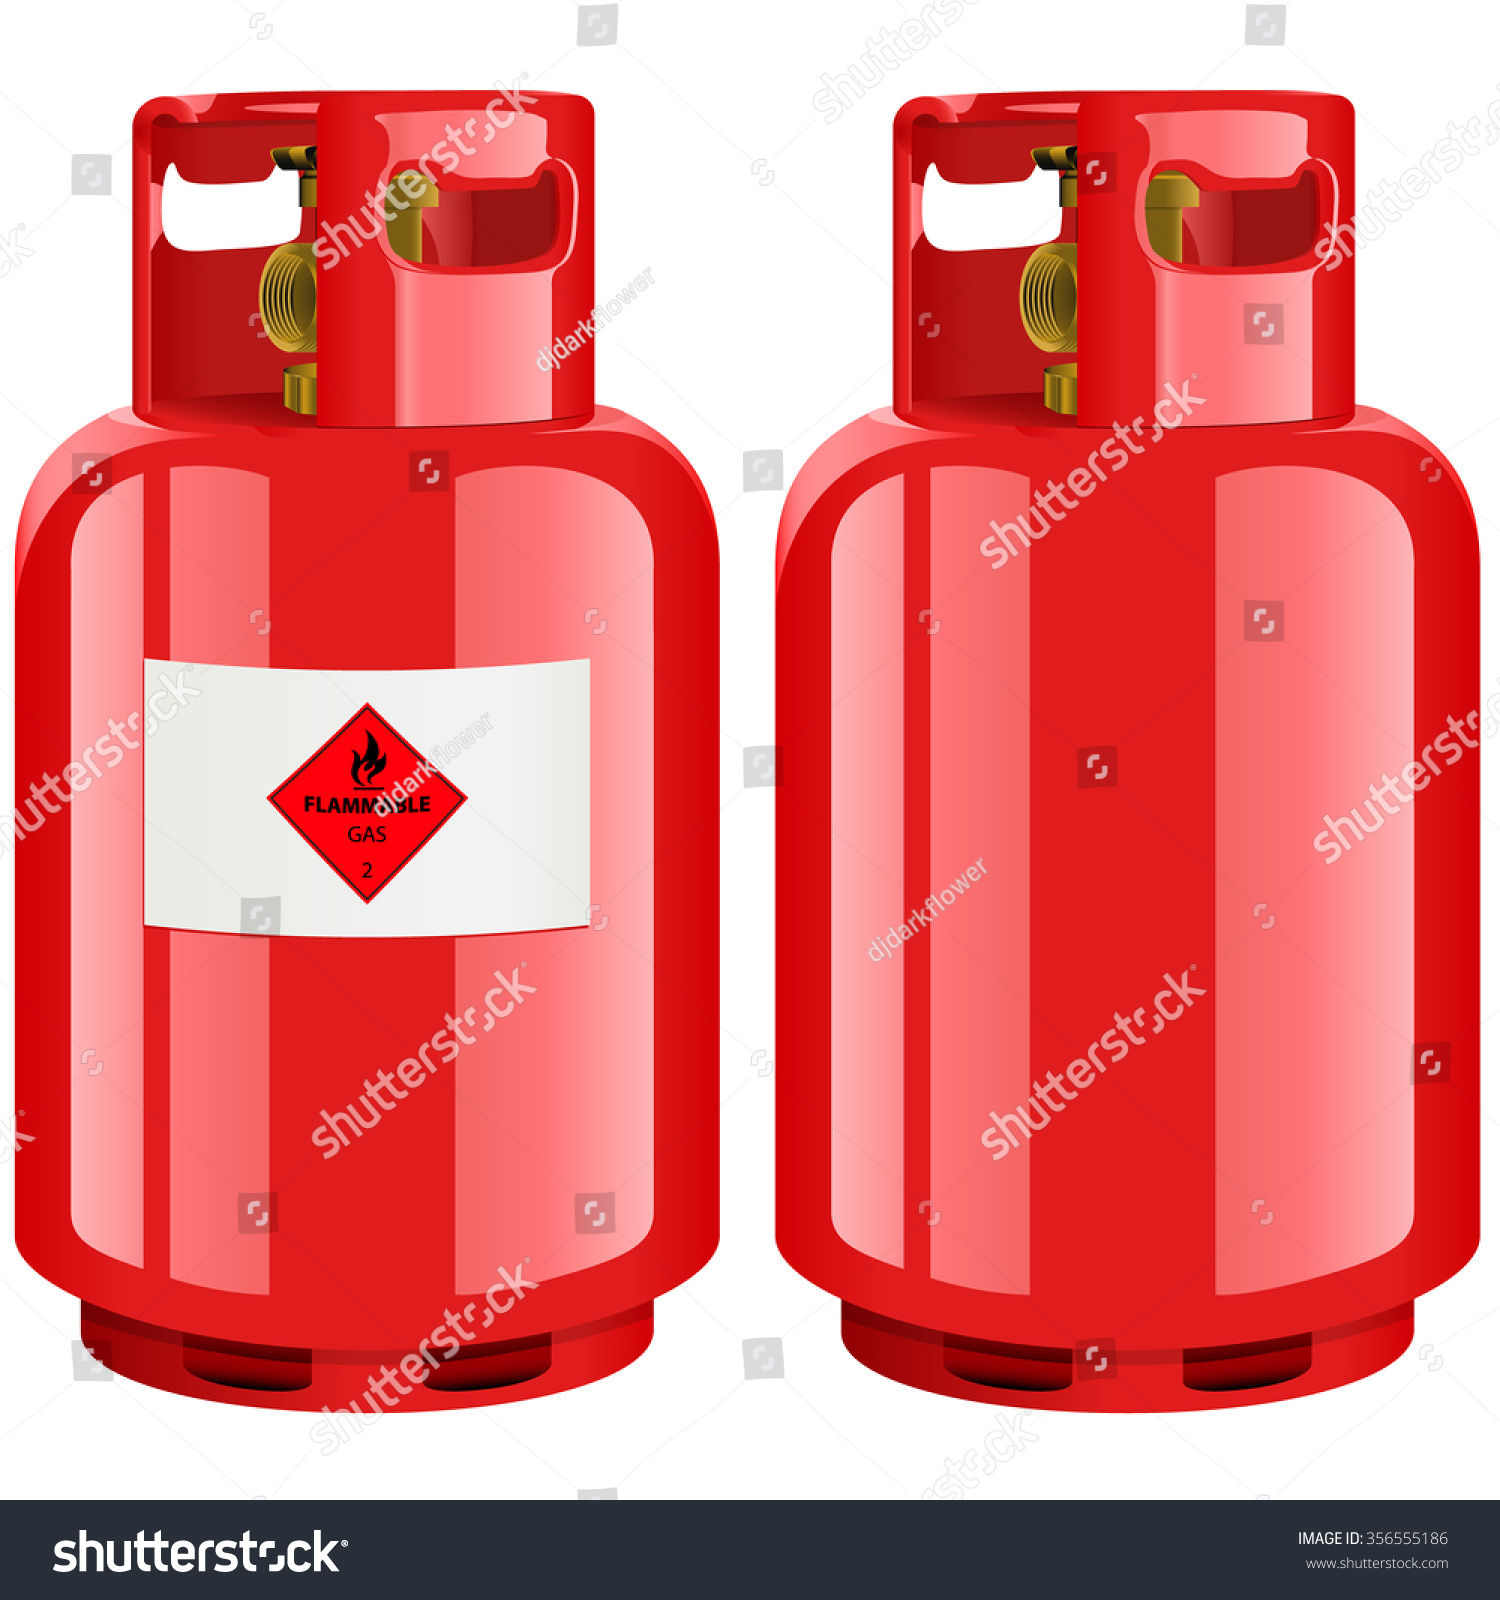 propane gas cylinder vector illustration stock vector 356555186 shutterstock. Black Bedroom Furniture Sets. Home Design Ideas